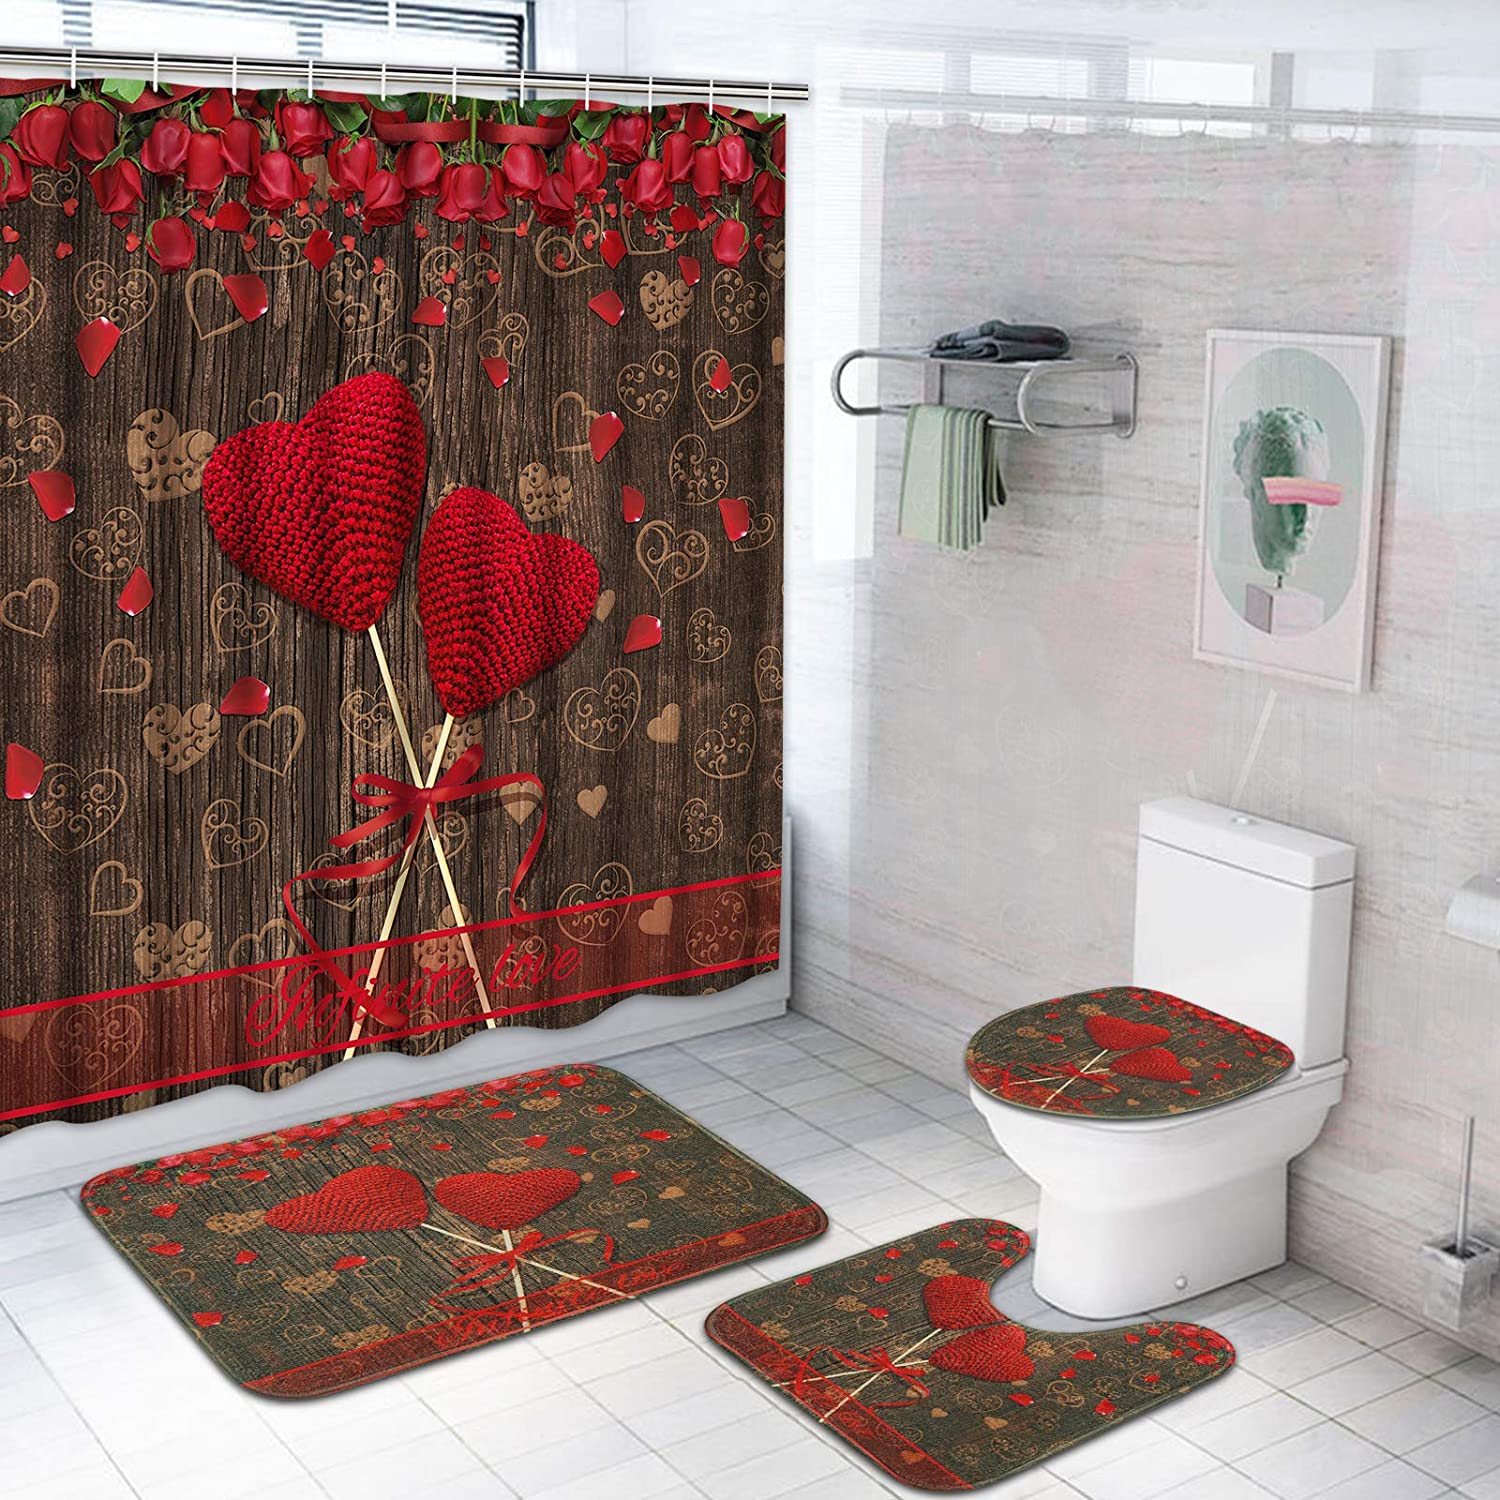 TAMOCRed Rose Shower Choice Curtain Set Toilet L Non-Slip Rug Ranking TOP5 with